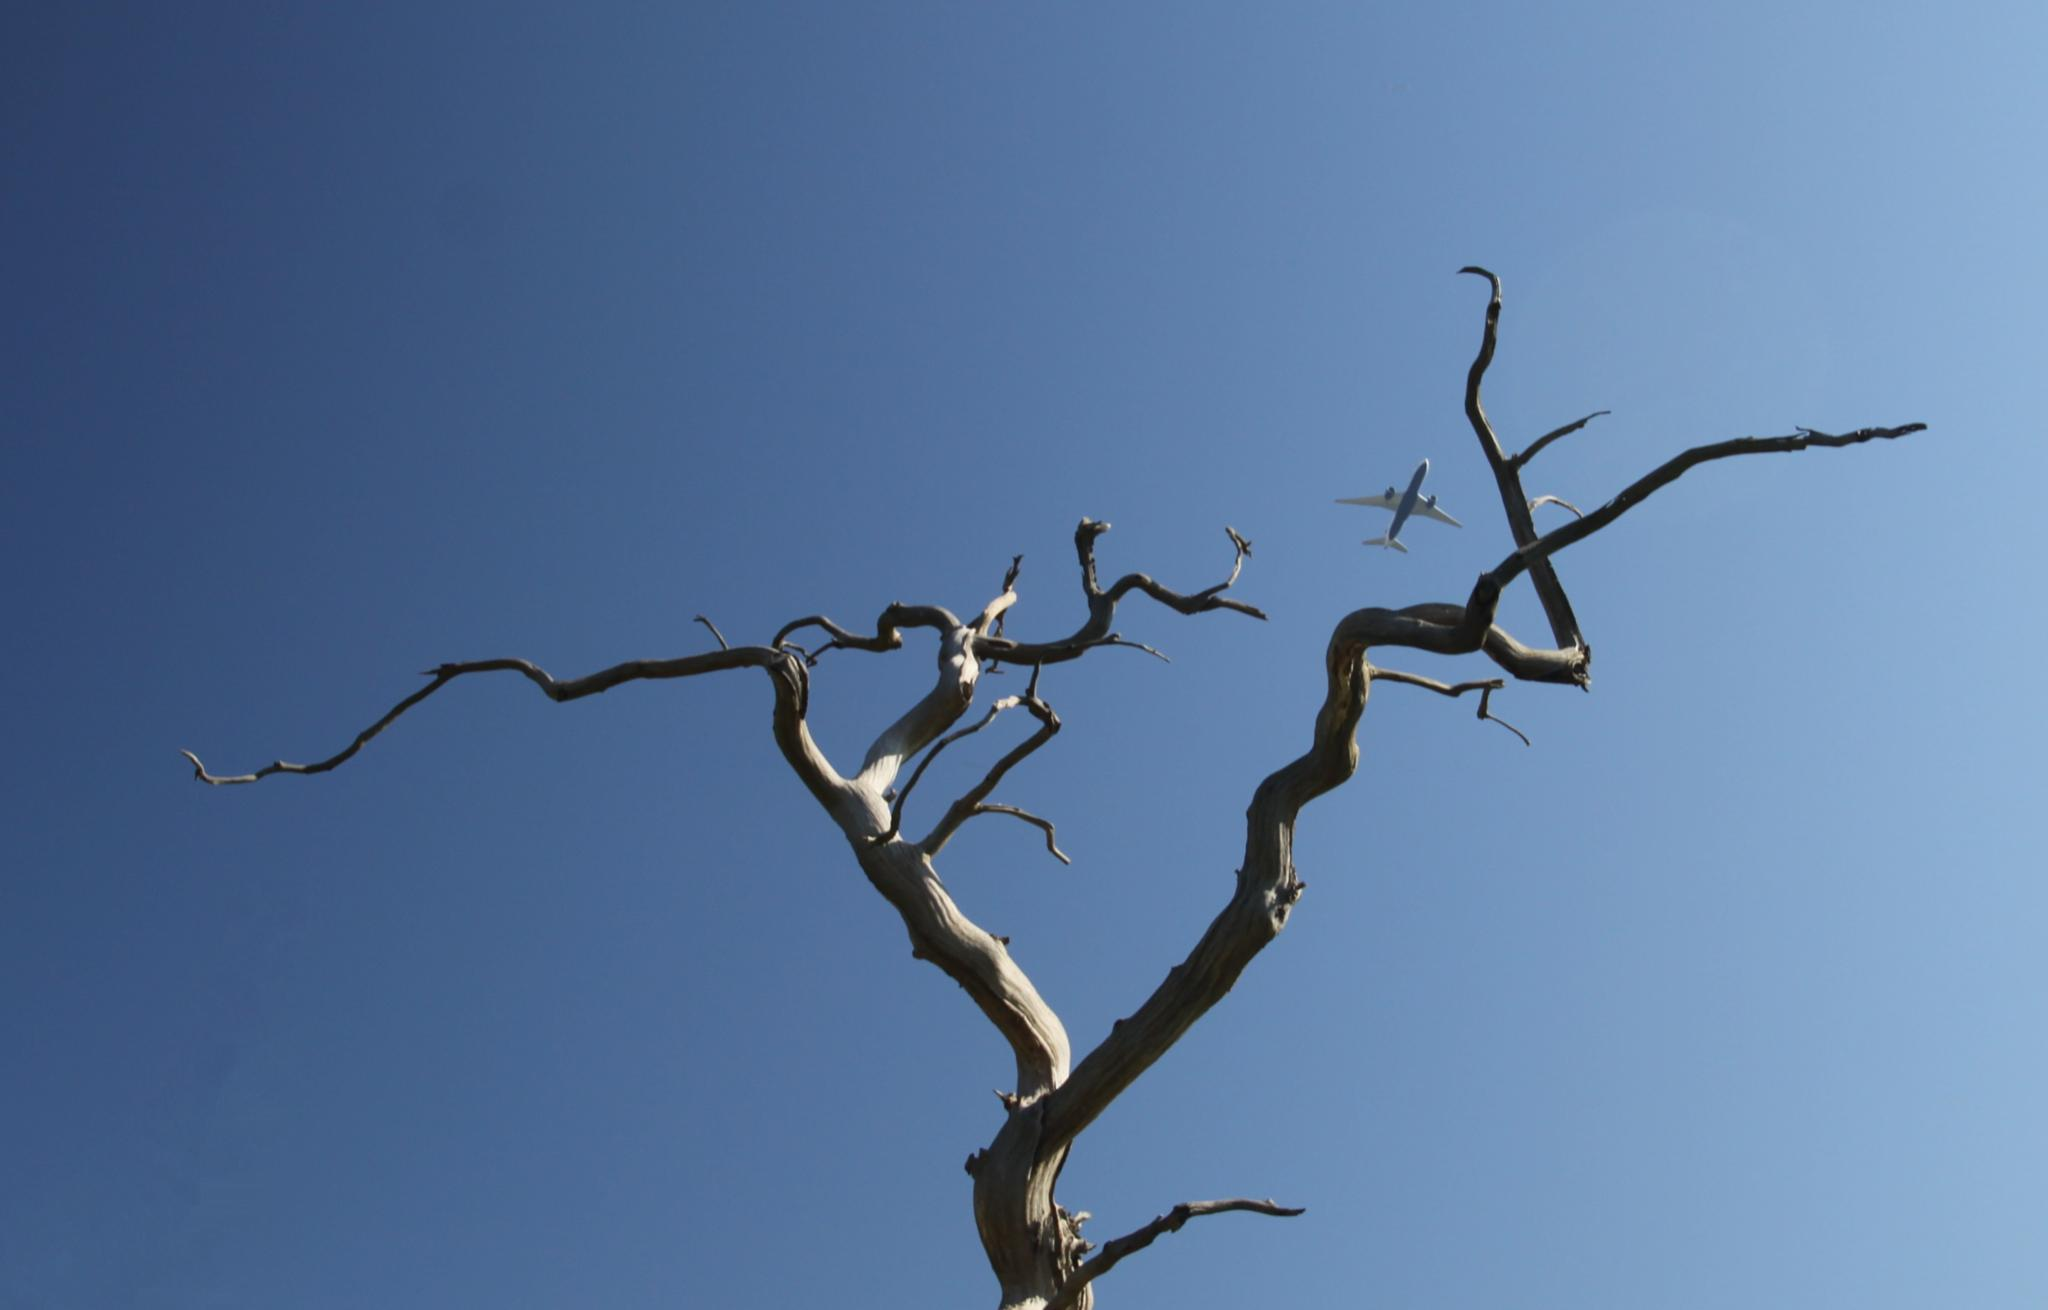 New Bird, Old Tree by Phil Webb